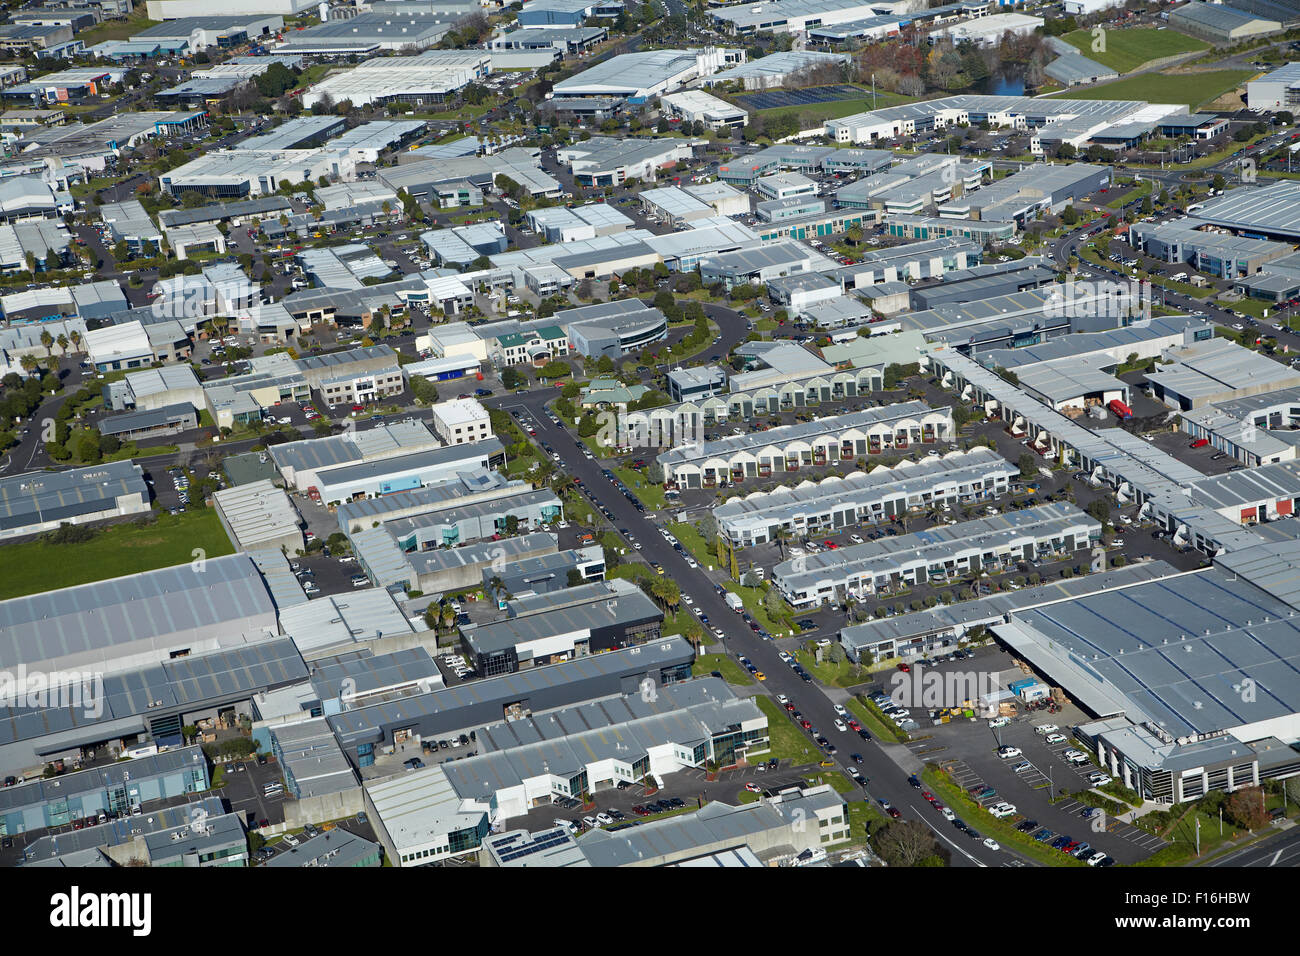 Industrial area, Airborne Road, Rosedale, Auckland, North Island, New Zealand - aerial - Stock Image